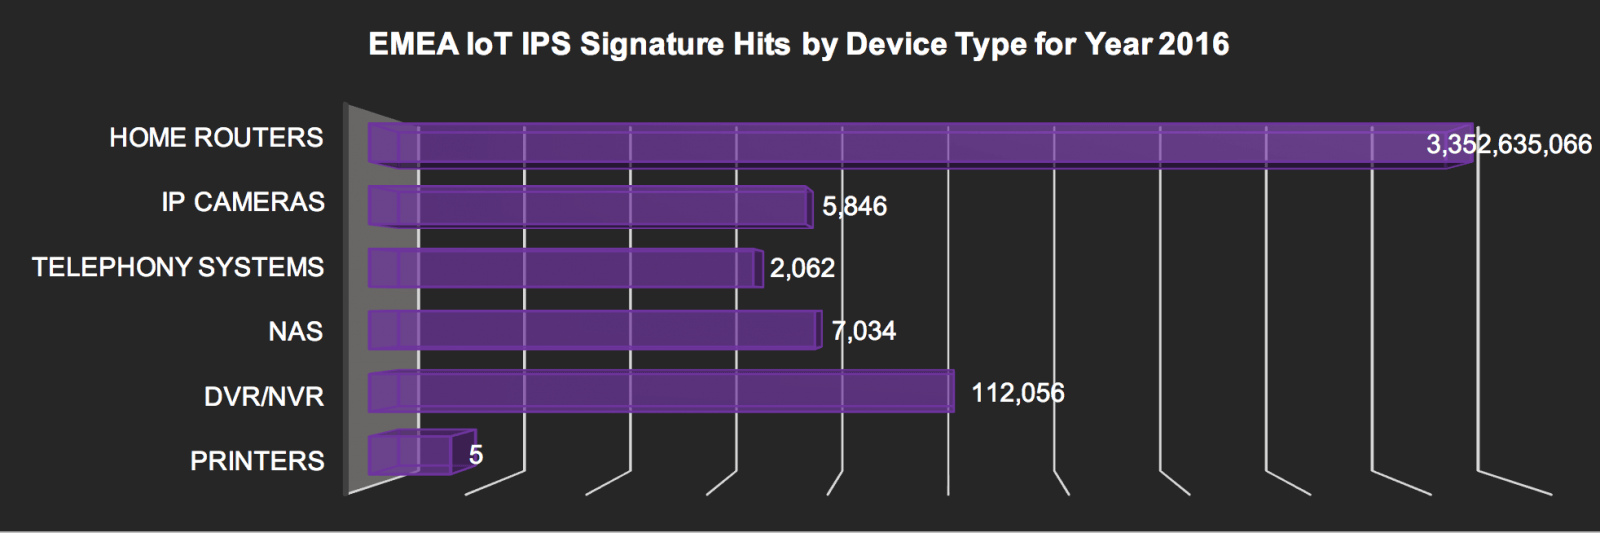 IoT IPS signature hits in EMEA by device - 2016